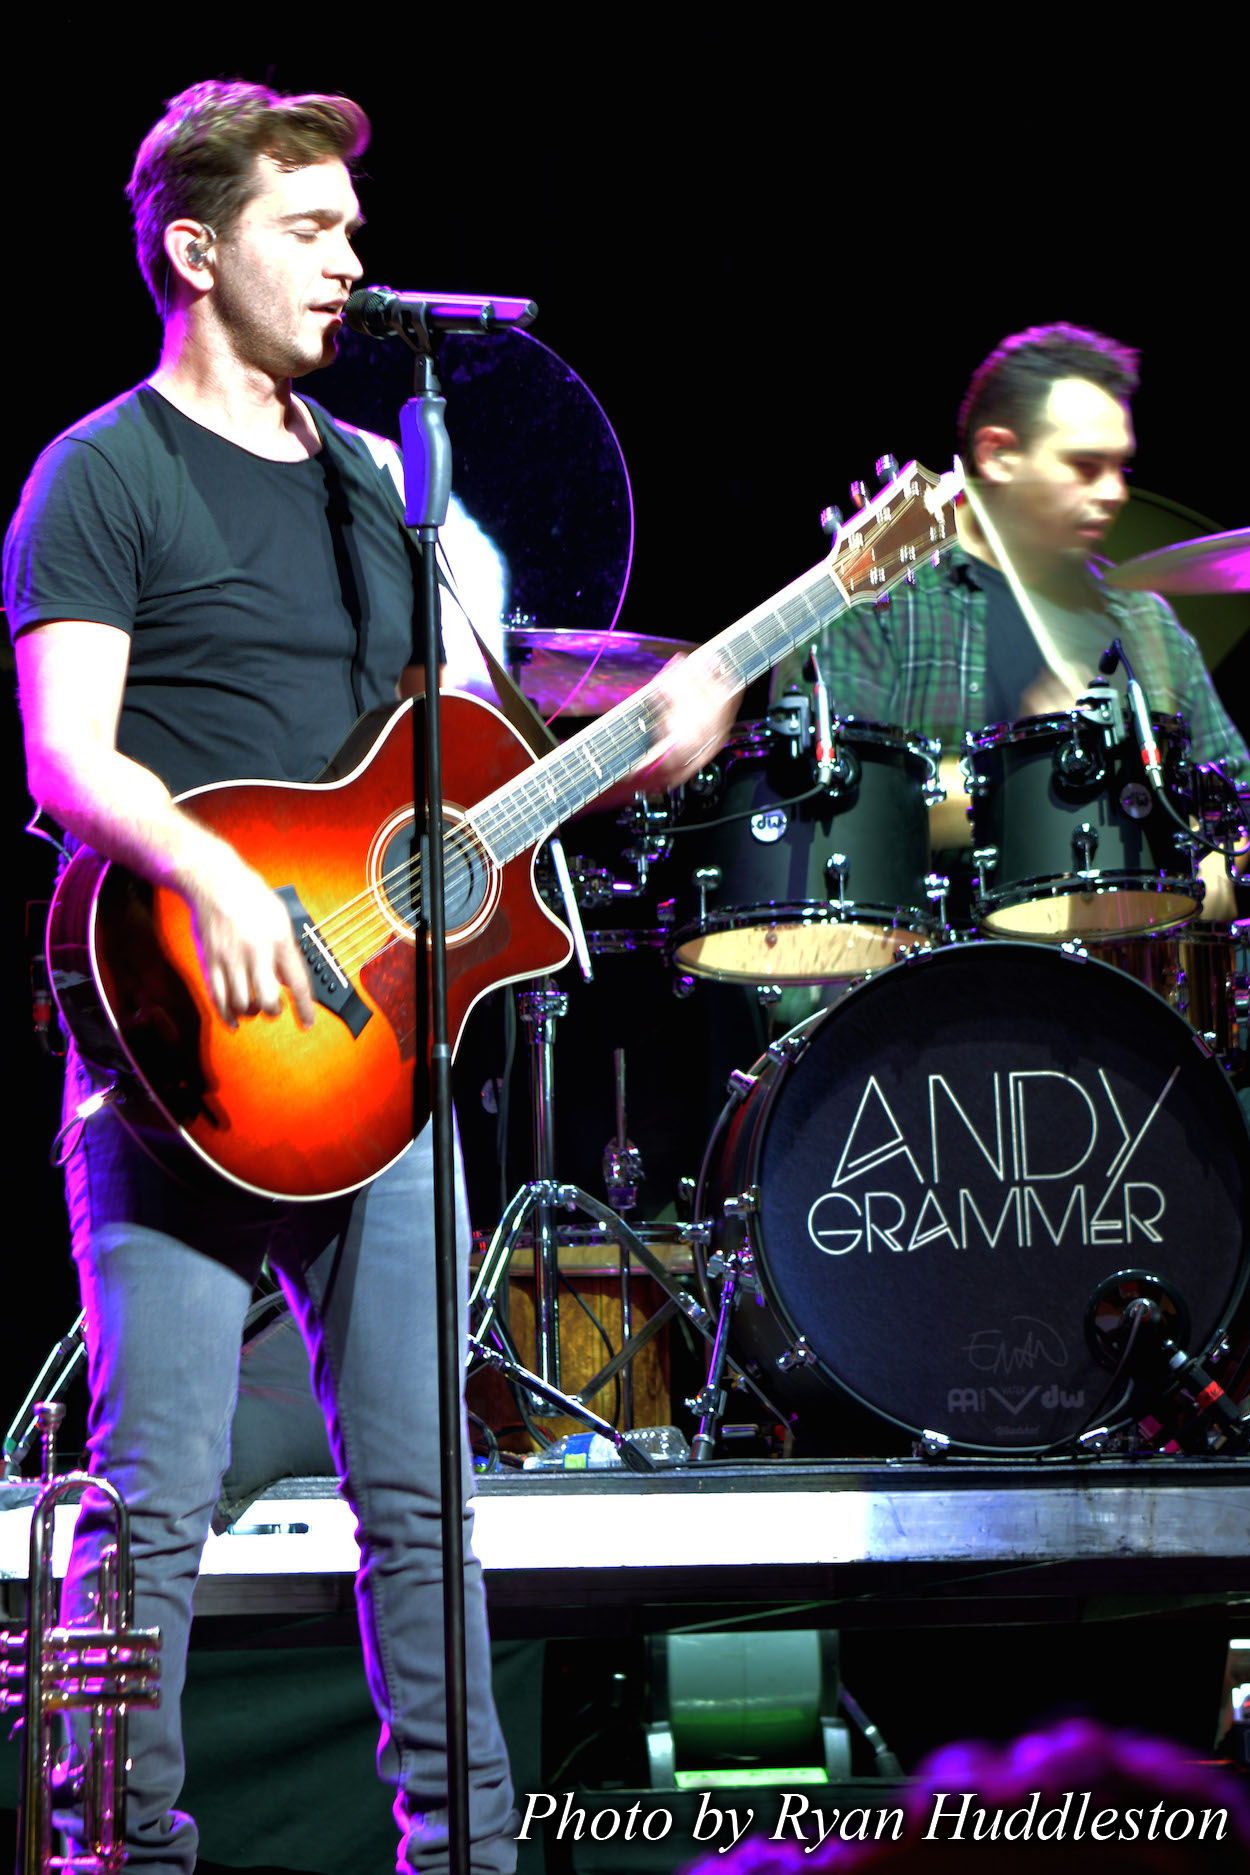 Andy Grammer Train Tour 2015